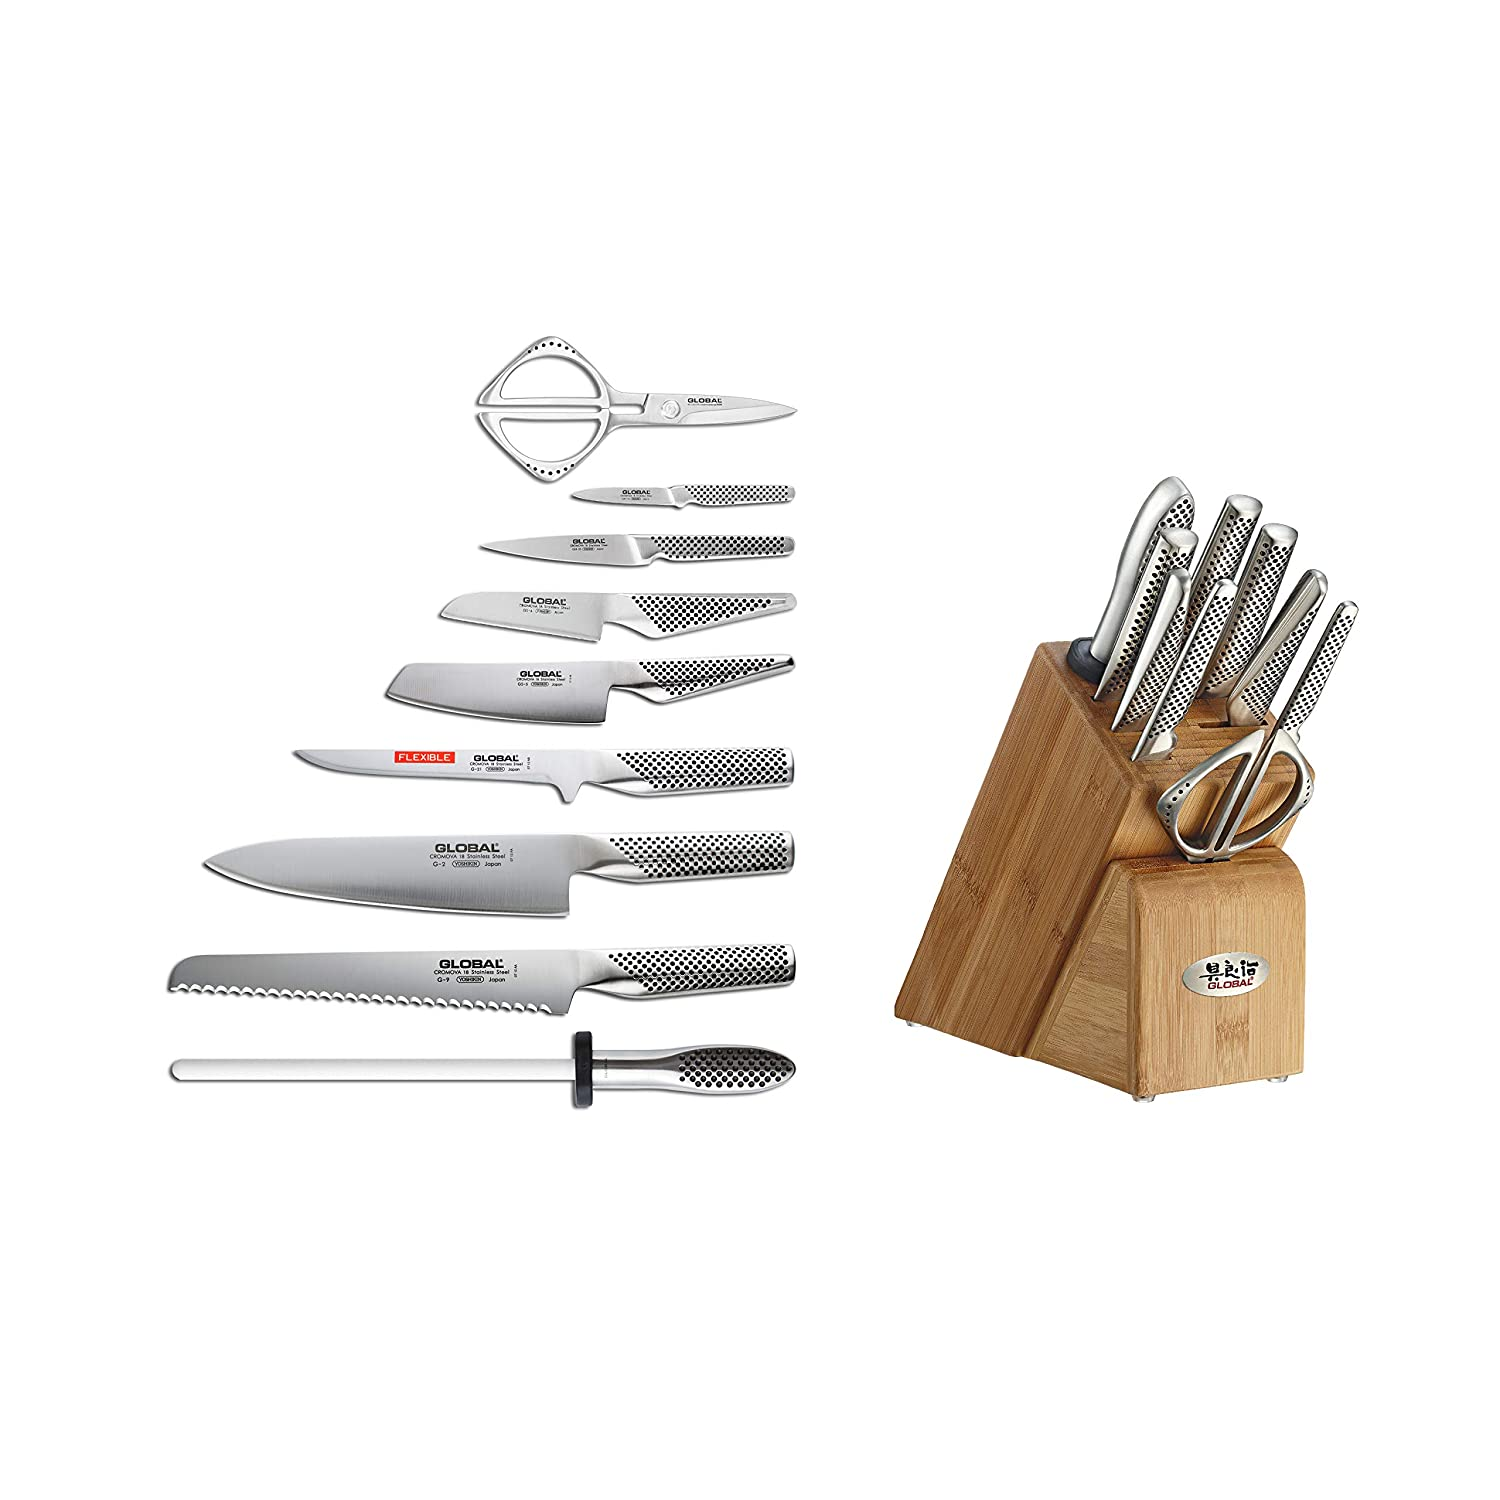 Amazon.com: Global 10-Piece Knife Block Set g-79589au ...